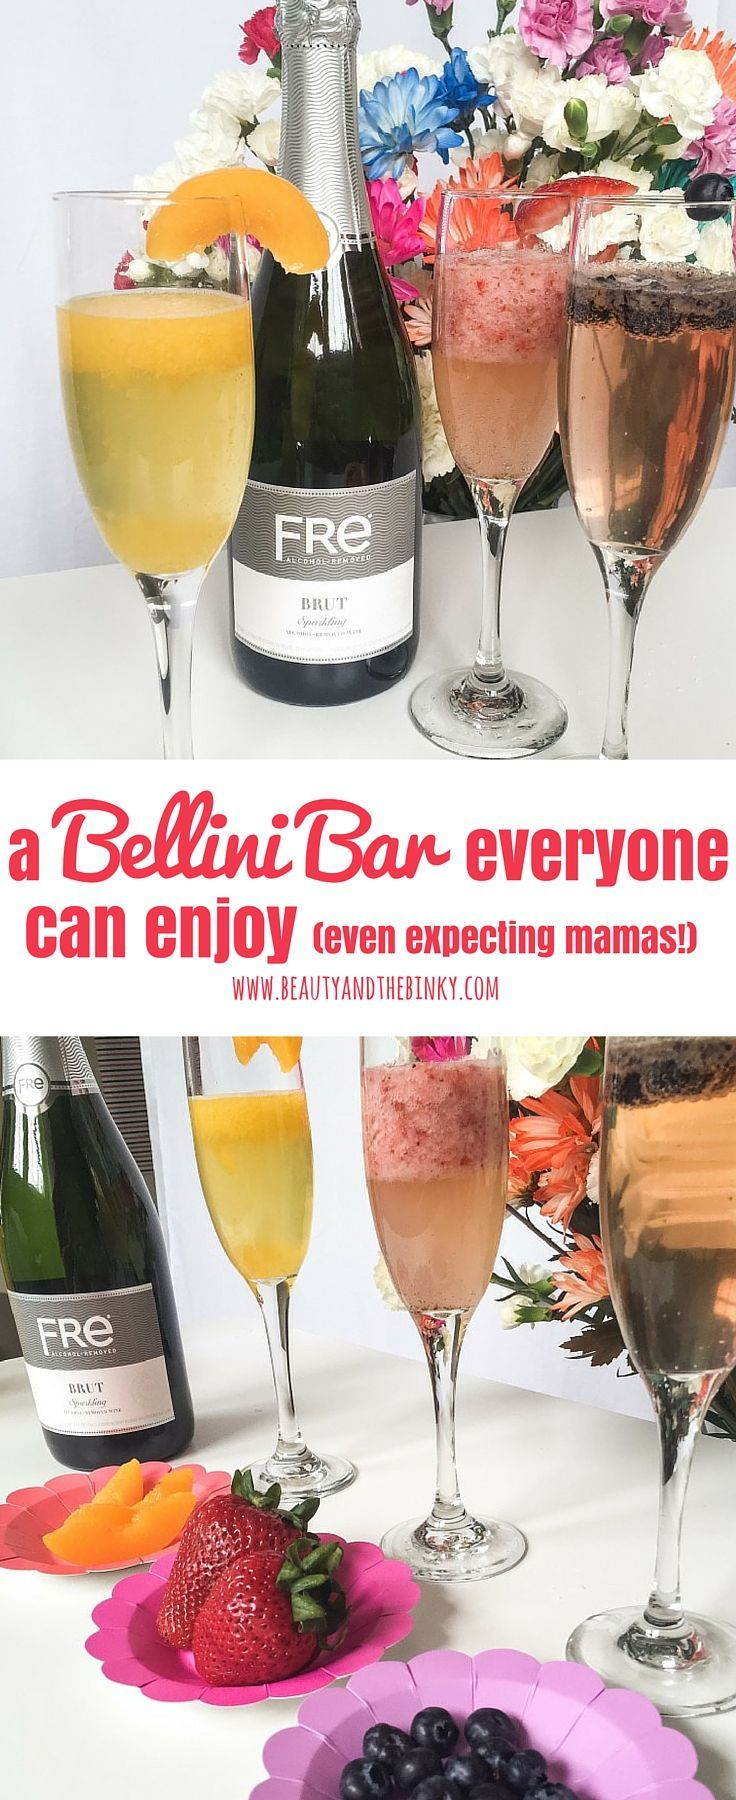 Msg 4 21+   A Bellini Bar Everyone Can Enjoy (Even Expecting Mamas!)   Beauty and the Binky blog   #ad, #sponsored, #MomsSipSmart, mimosas, cocktails, mocktails, alcohol-free wine, alcohol-removed wine, wine for pregnancy, wine for moms, events, special occasion, baby shower, baby shower bellinis, bellini bar, champagne, champagne for moms, champagne for pregnancy, fruit bar…